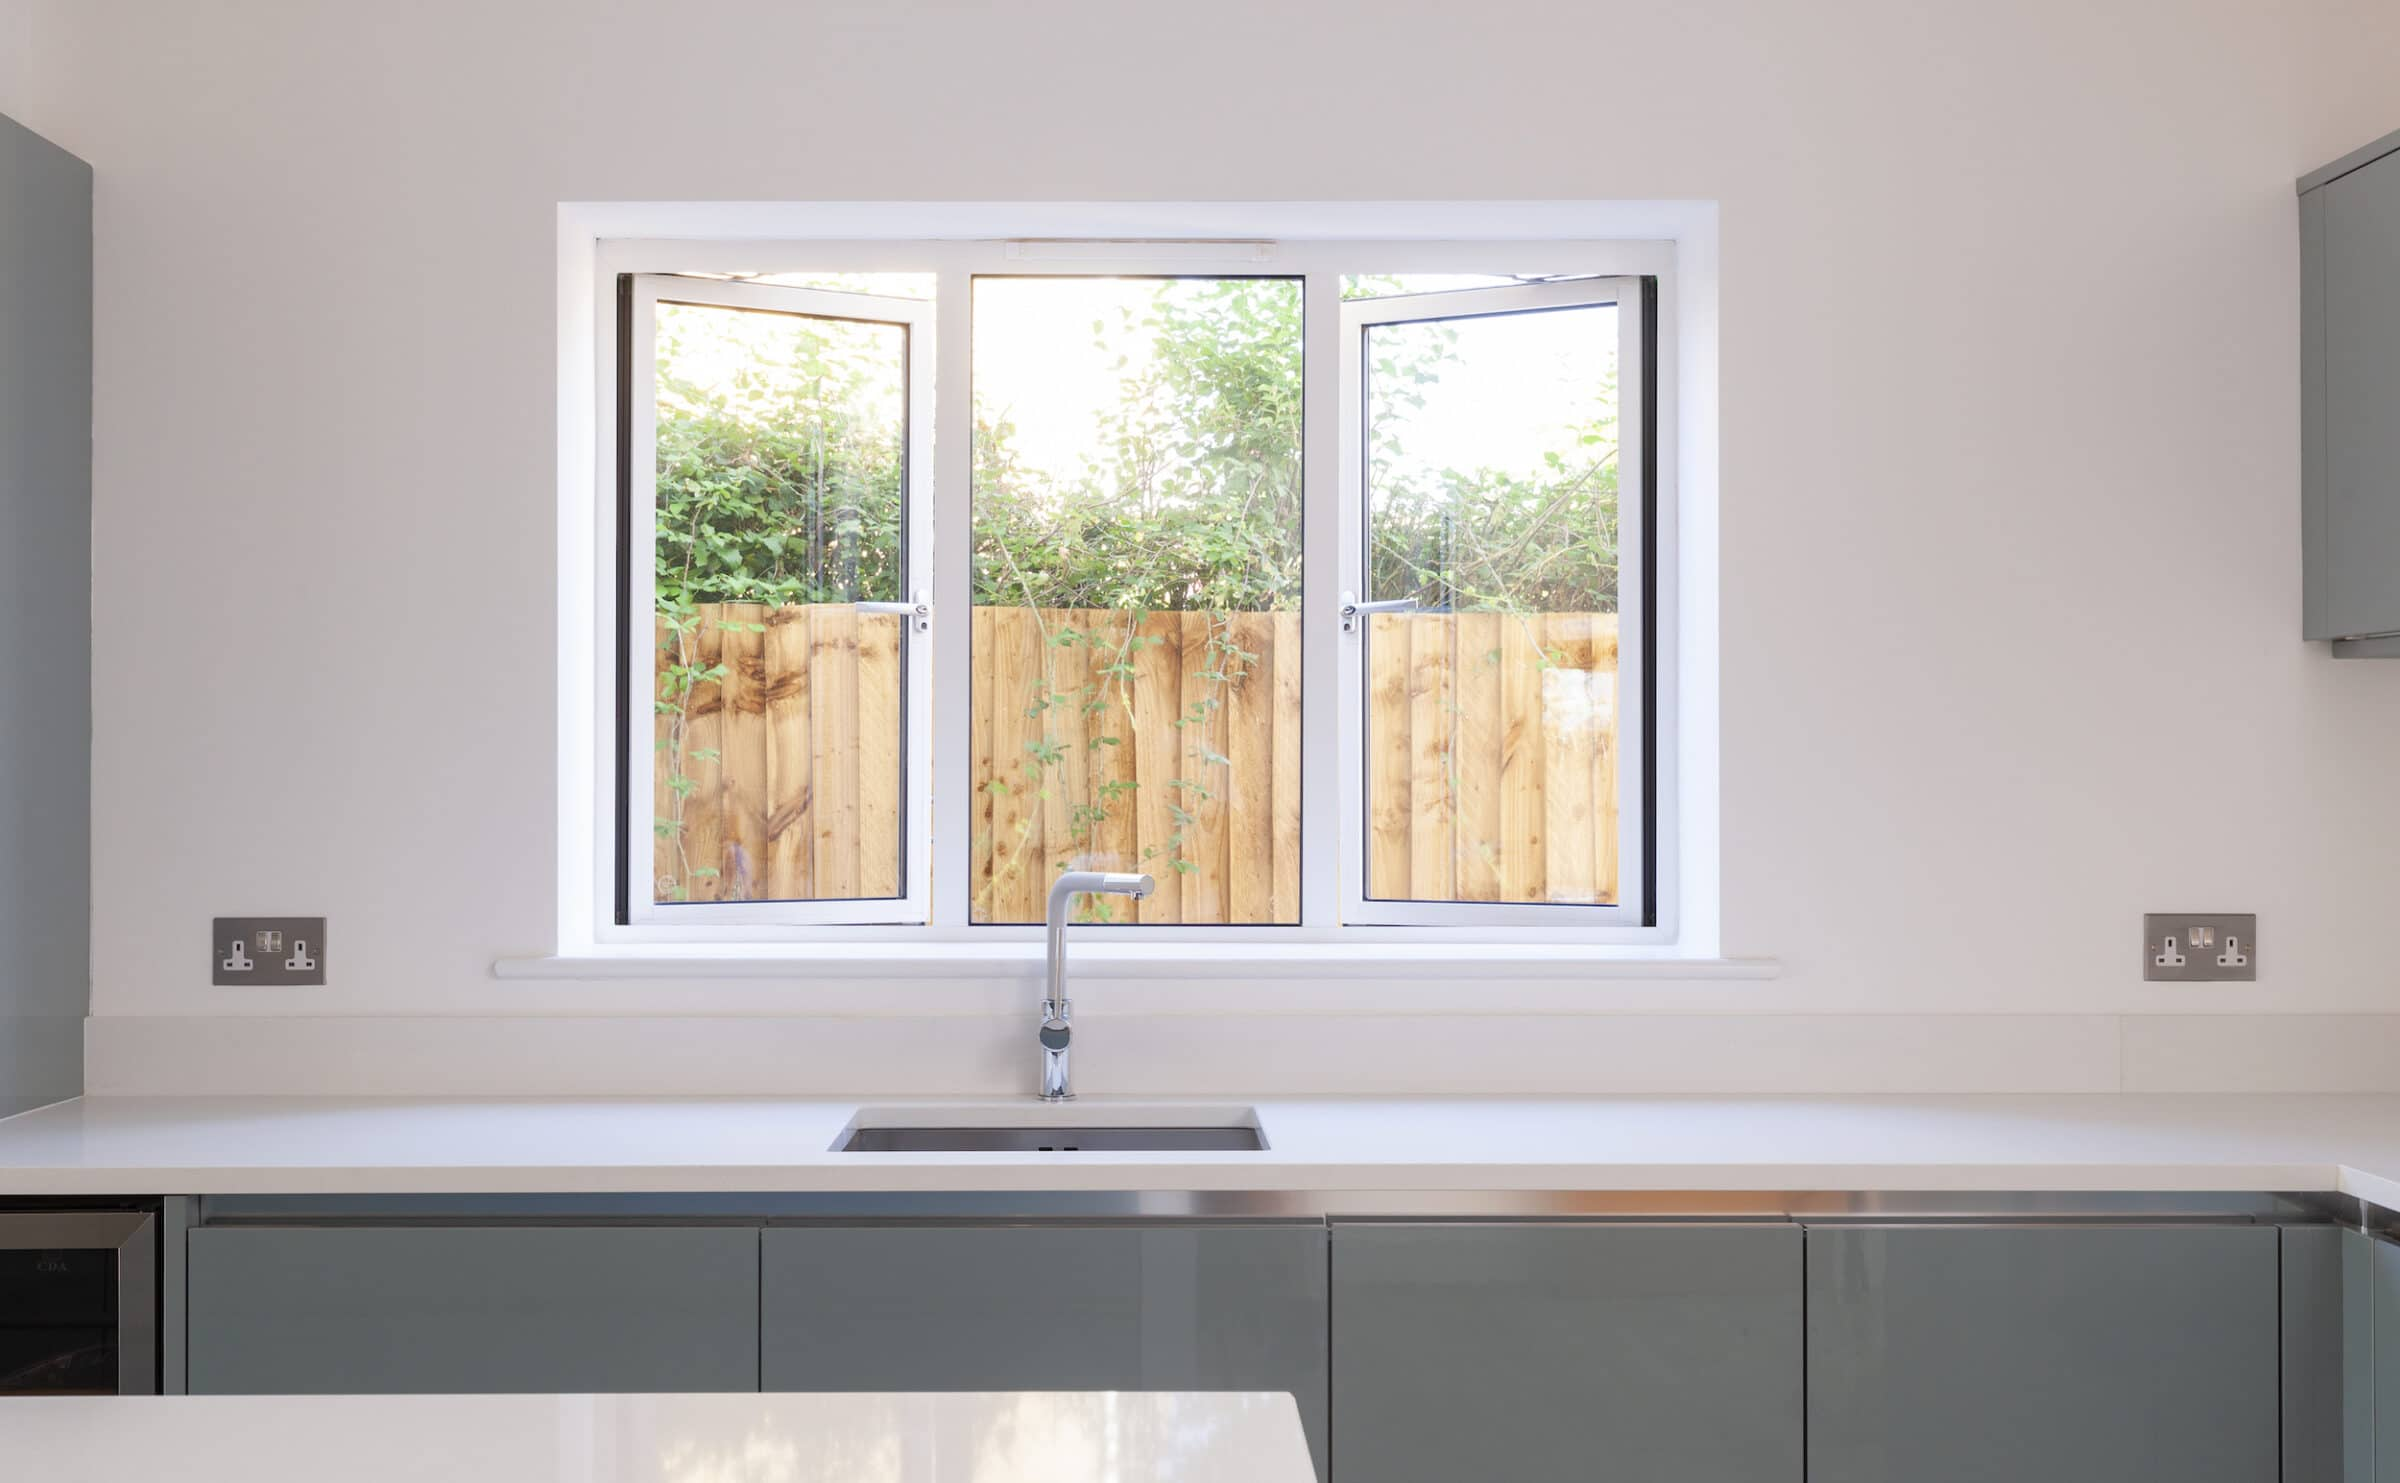 secured by design windows in a white colour in a new home